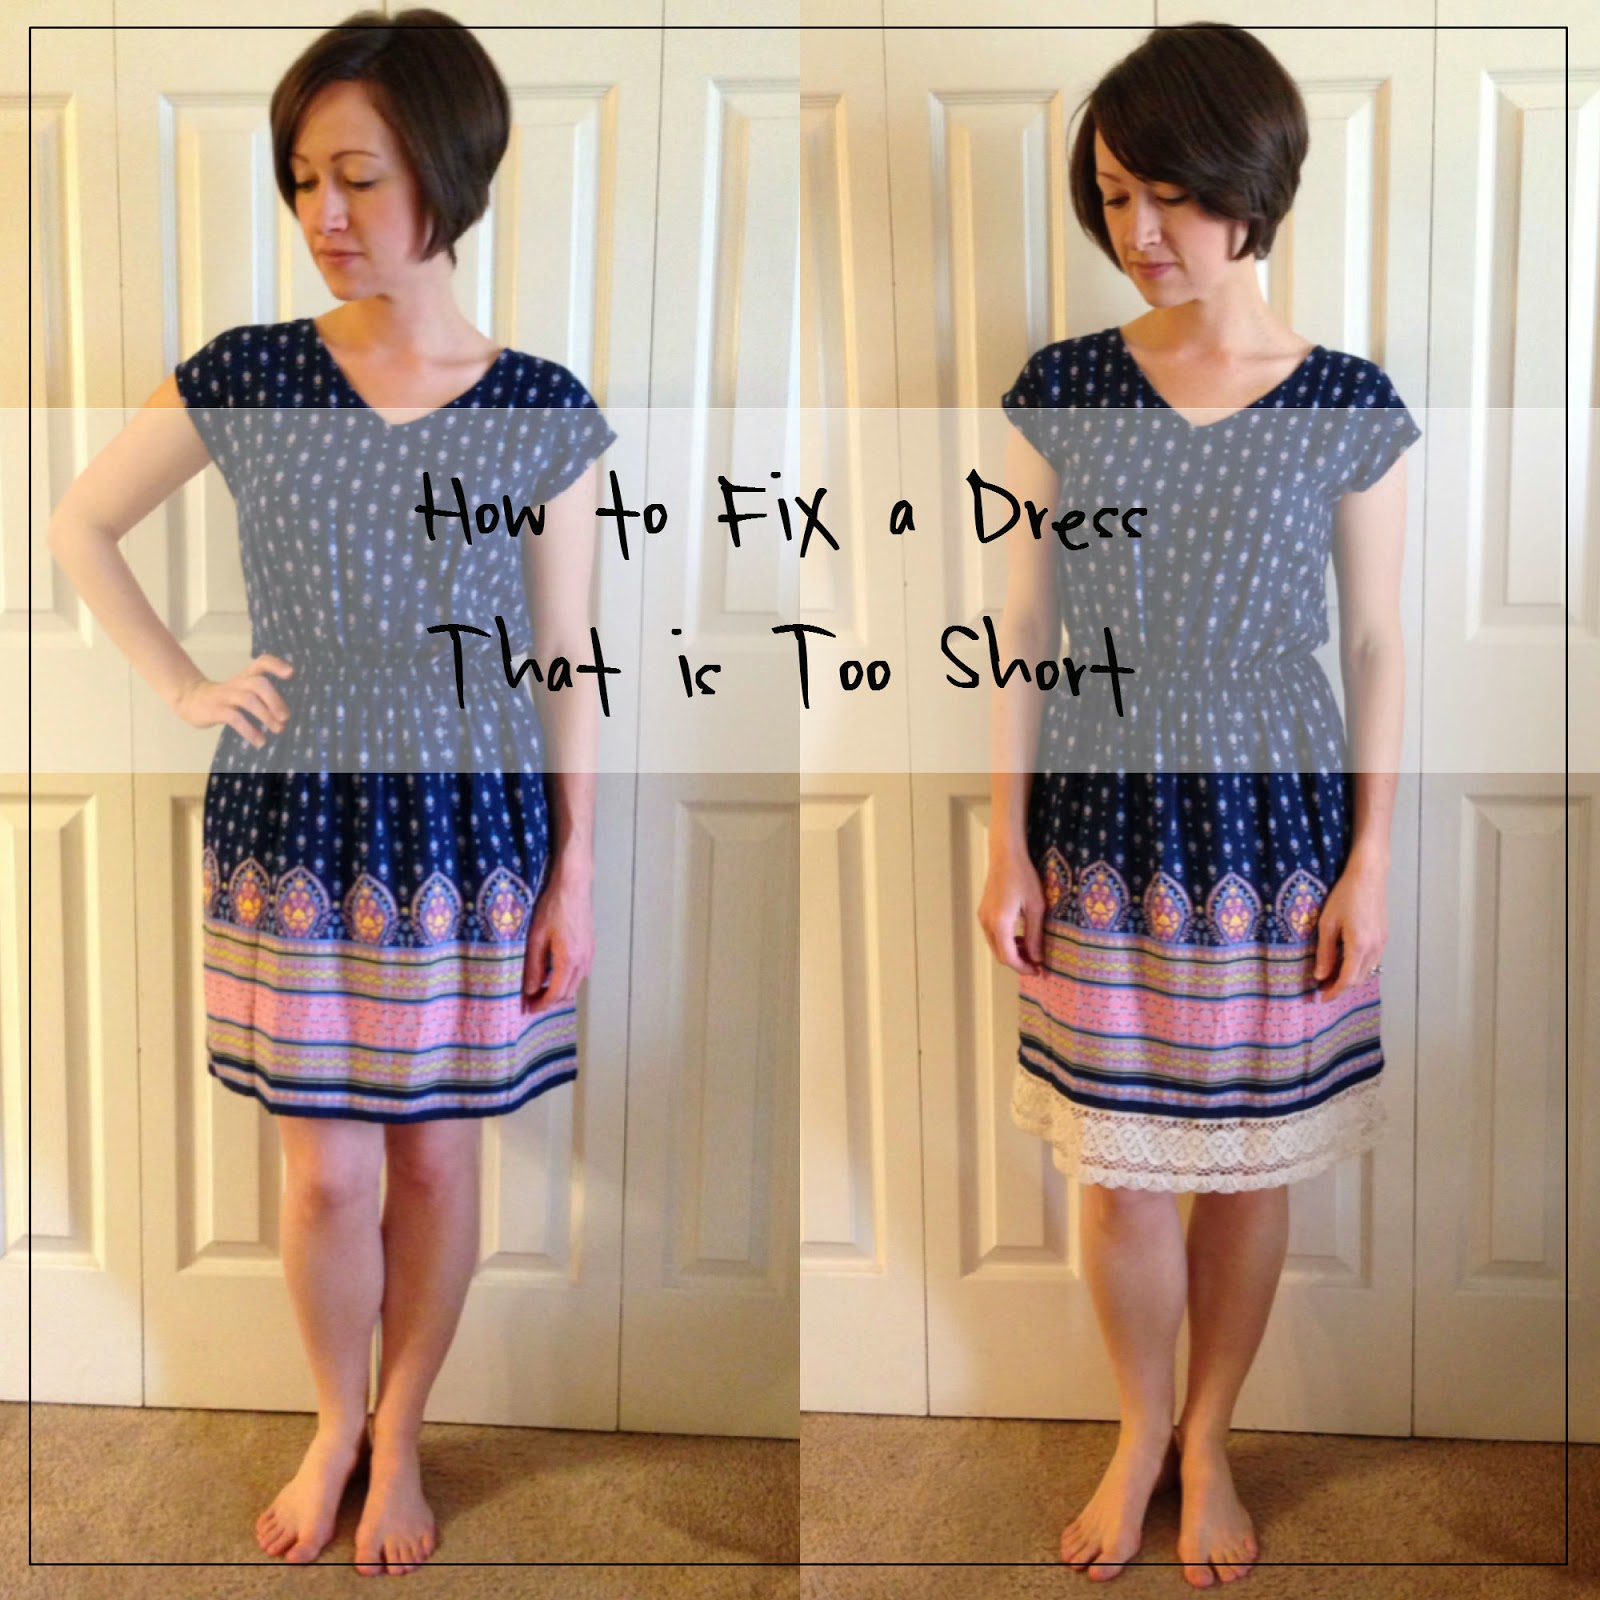 Everyday Bijoux: How to Fix a Dress That is Too Short